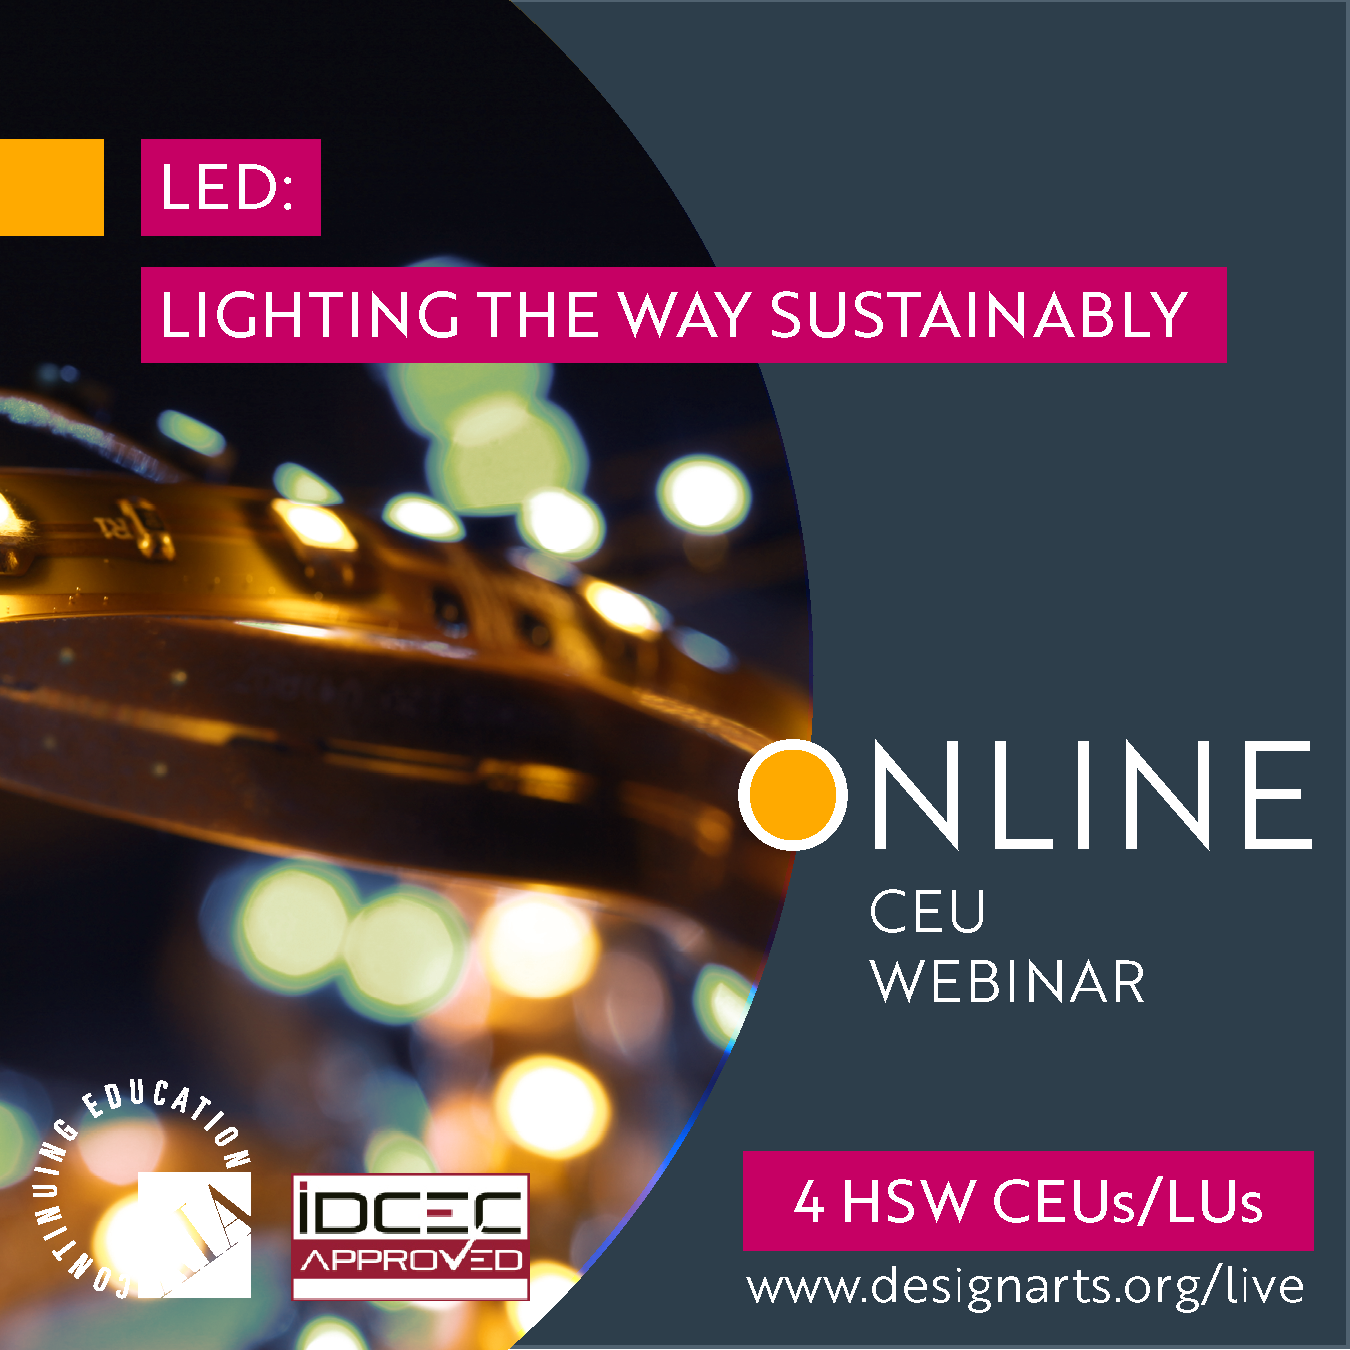 CEU: LED LIGHTING THE WAY SUSTAINABLY